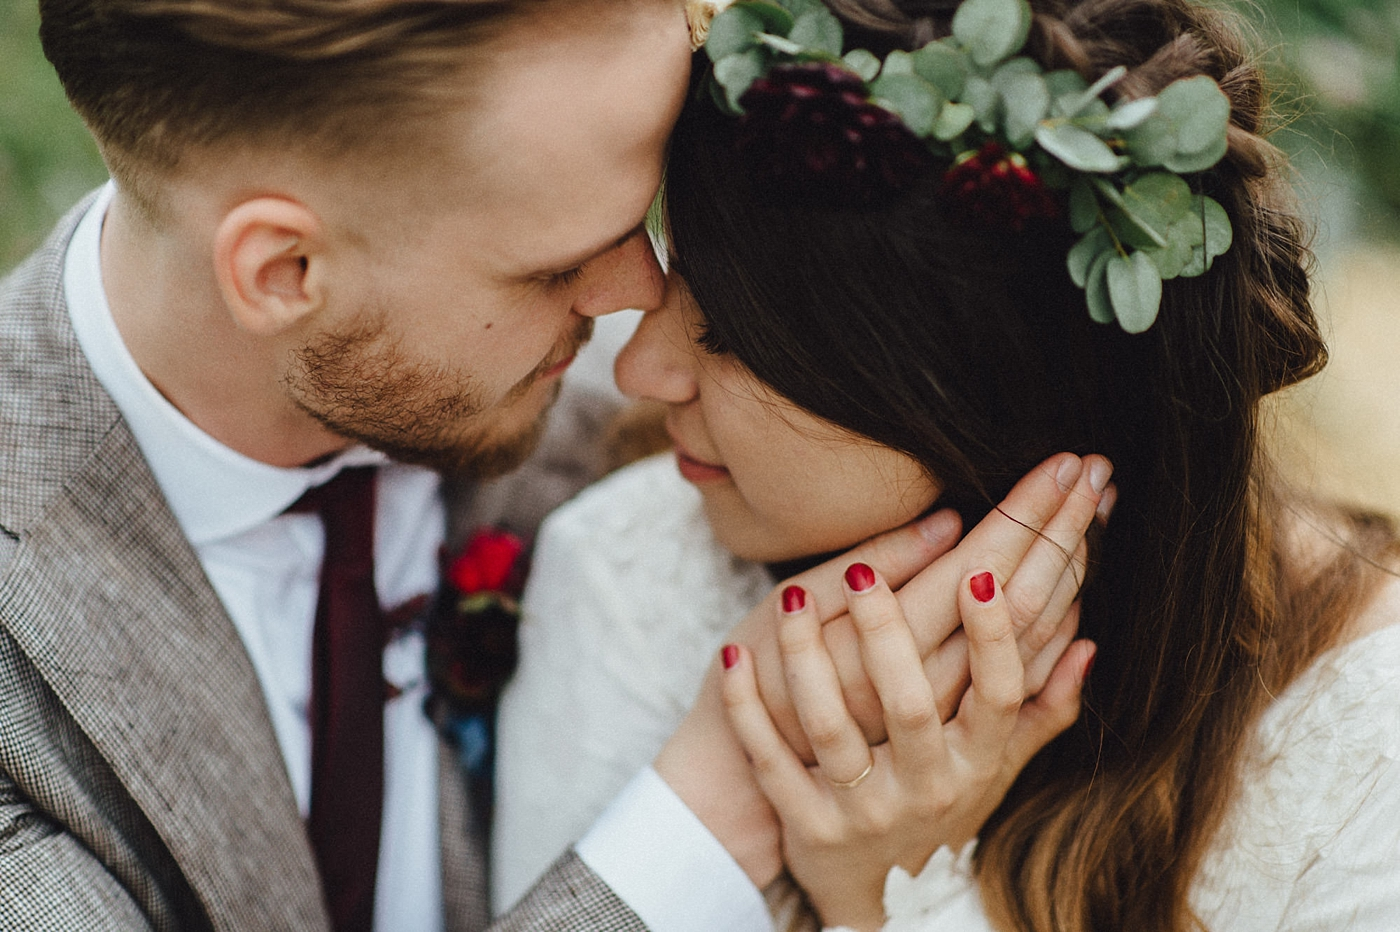 urban-elopement-wedding-177 Merve & Nils emotionales Elopement - Wedding Wesel & Schottlandurban elopement wedding 177 1